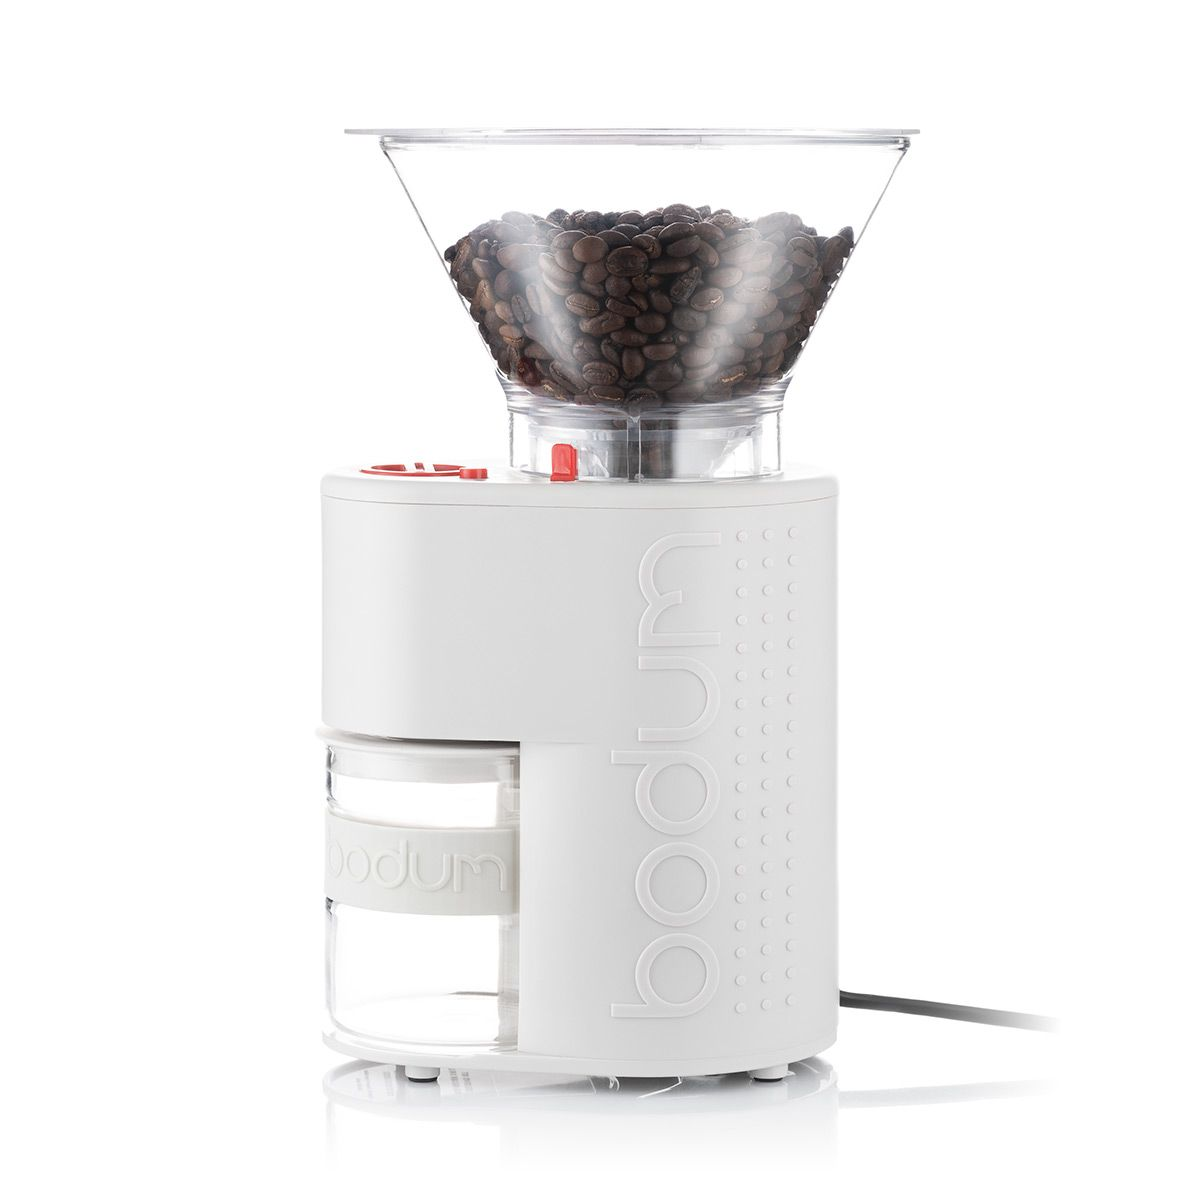 Electric Burr Grinder BISTRO Bodum - White